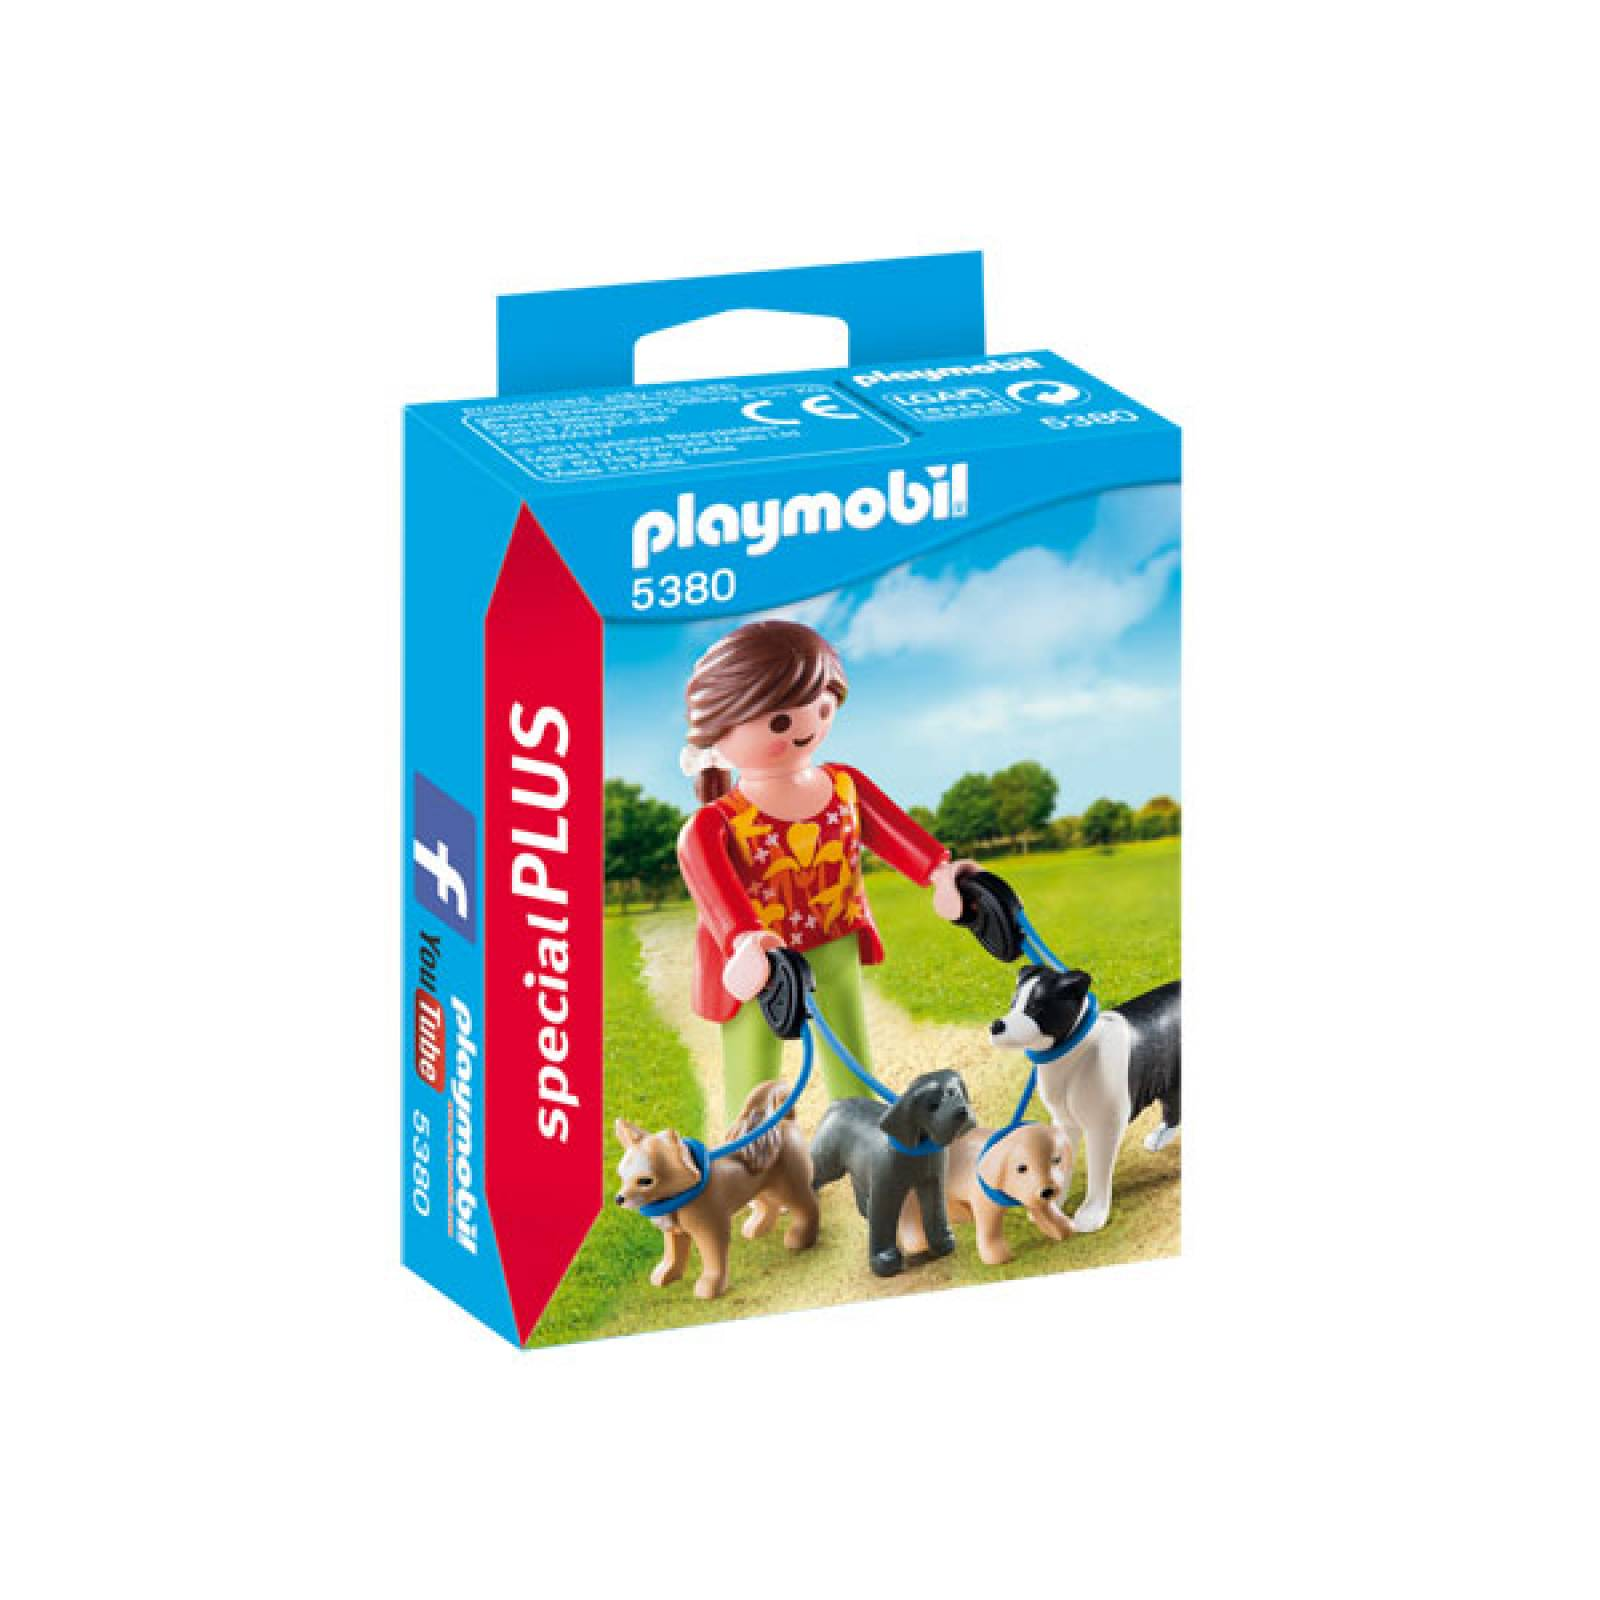 Dog Walker Special Plus Playmobil 5380 thumbnails